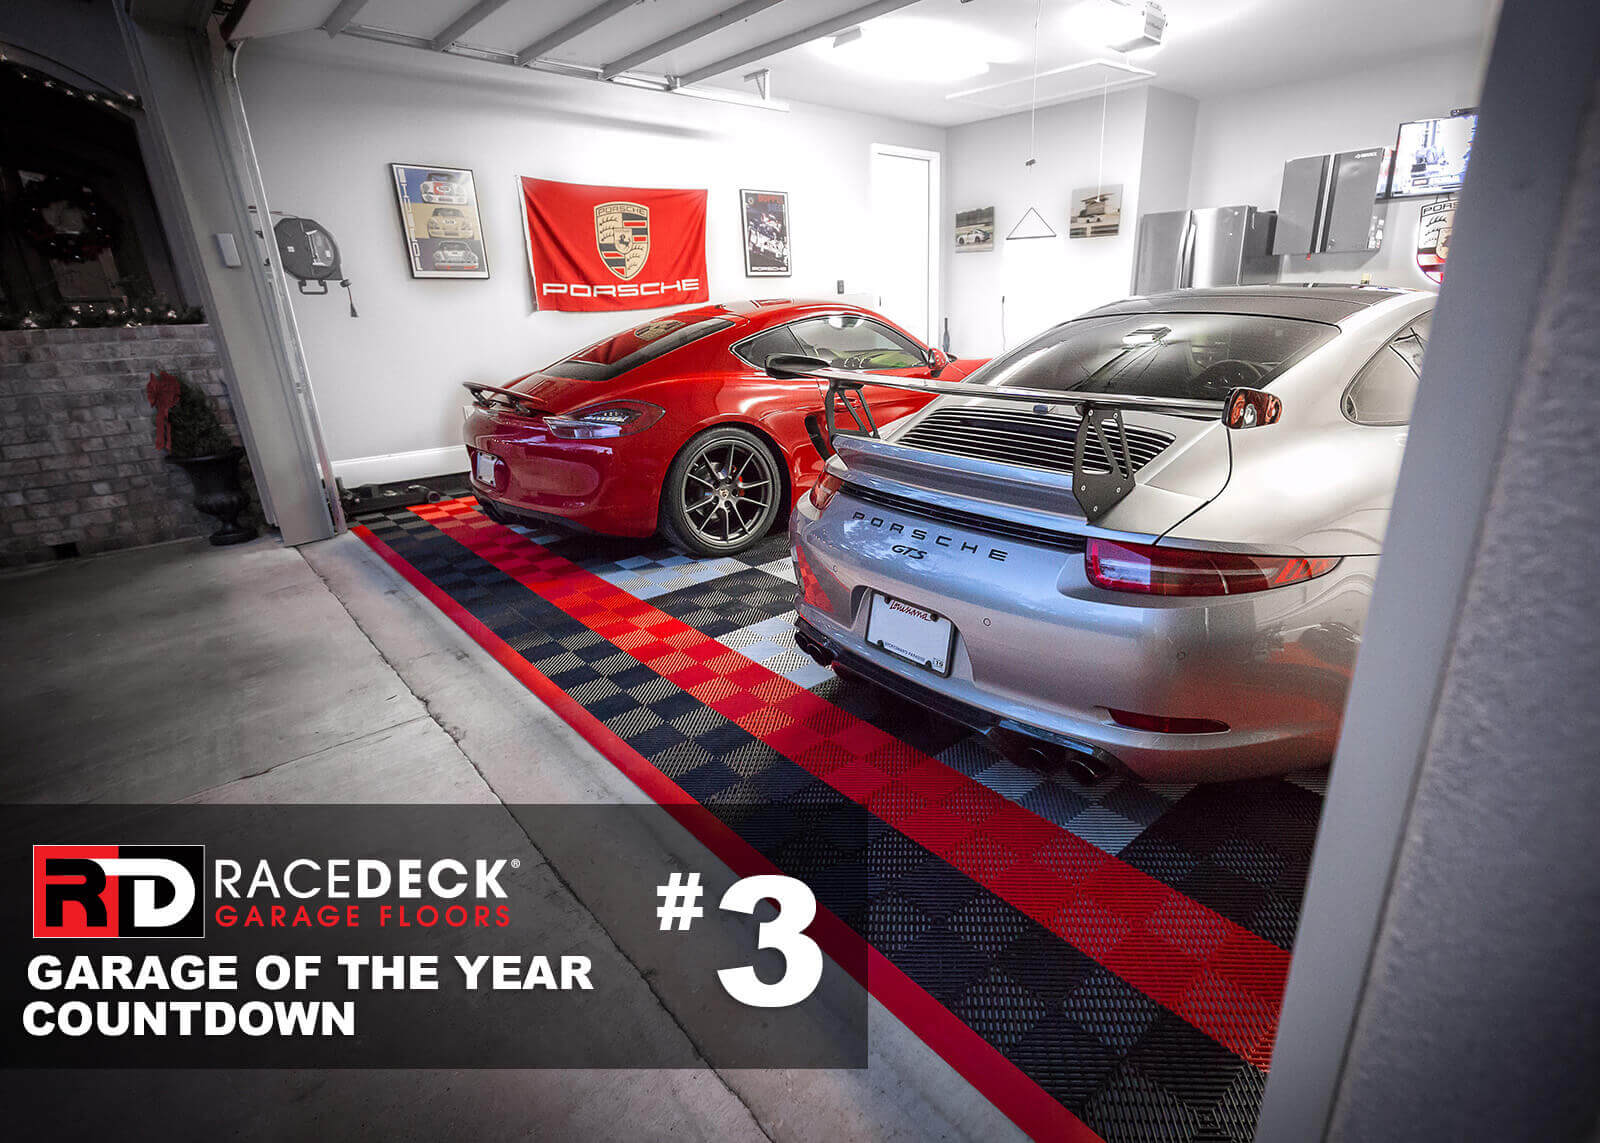 This Porsche garage features Free-Flow<sup>®</sup> in red, black and alloy colors.